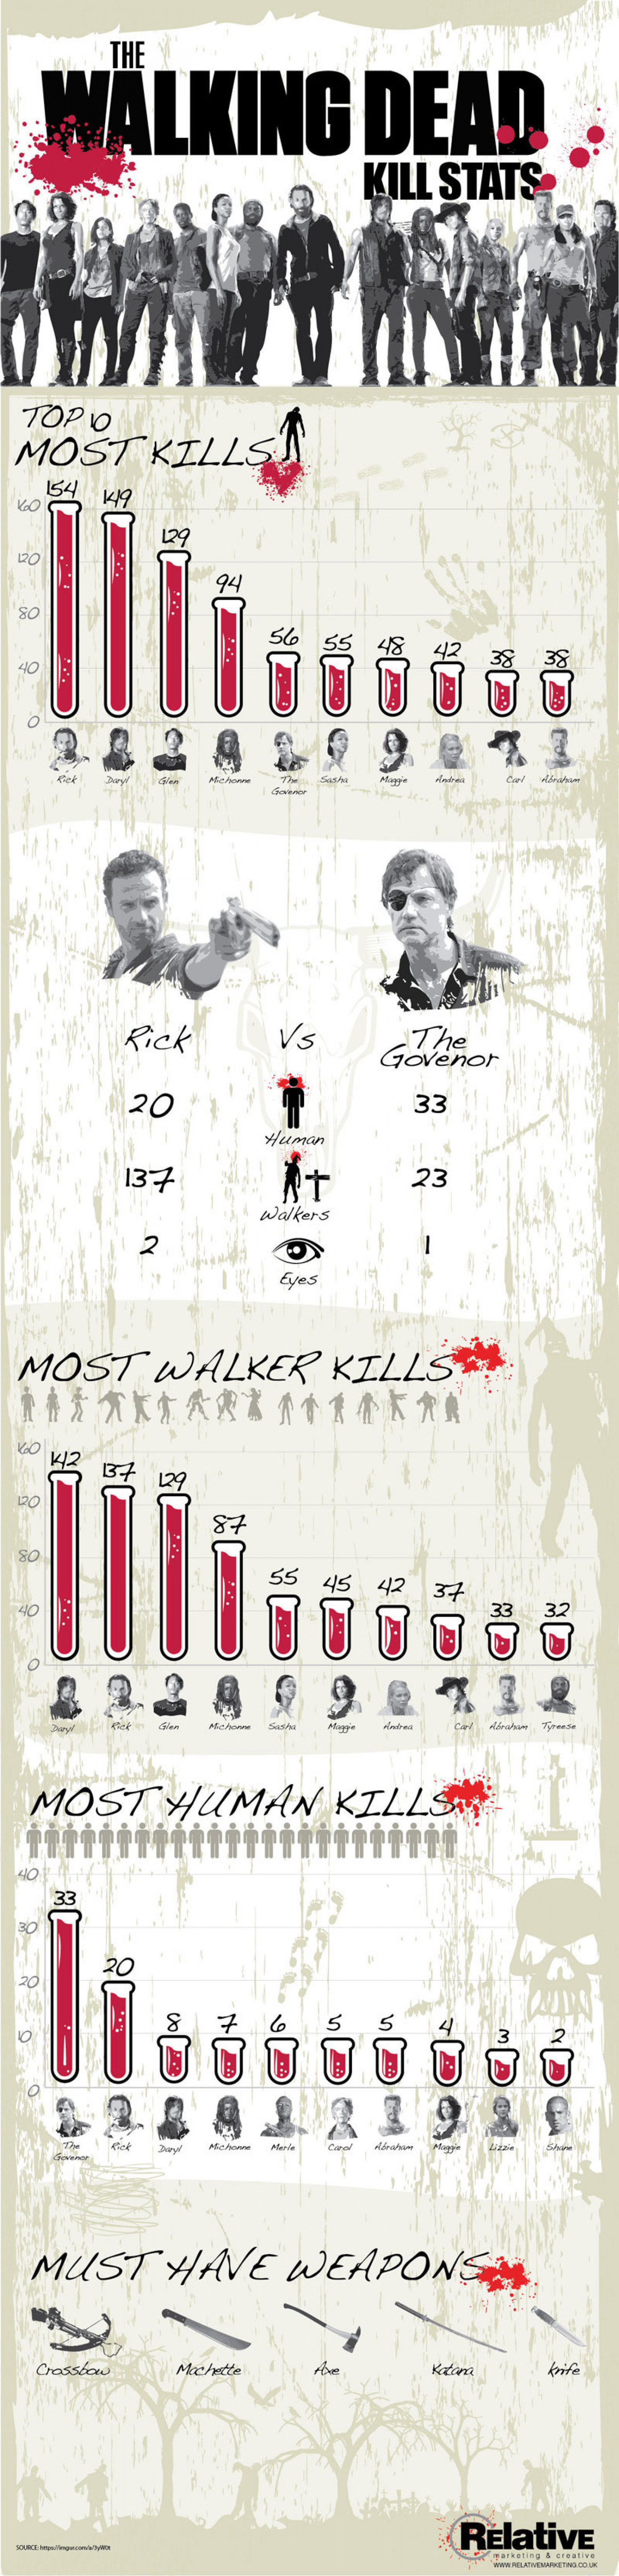 The Walking Dead Kill Stats Infographic